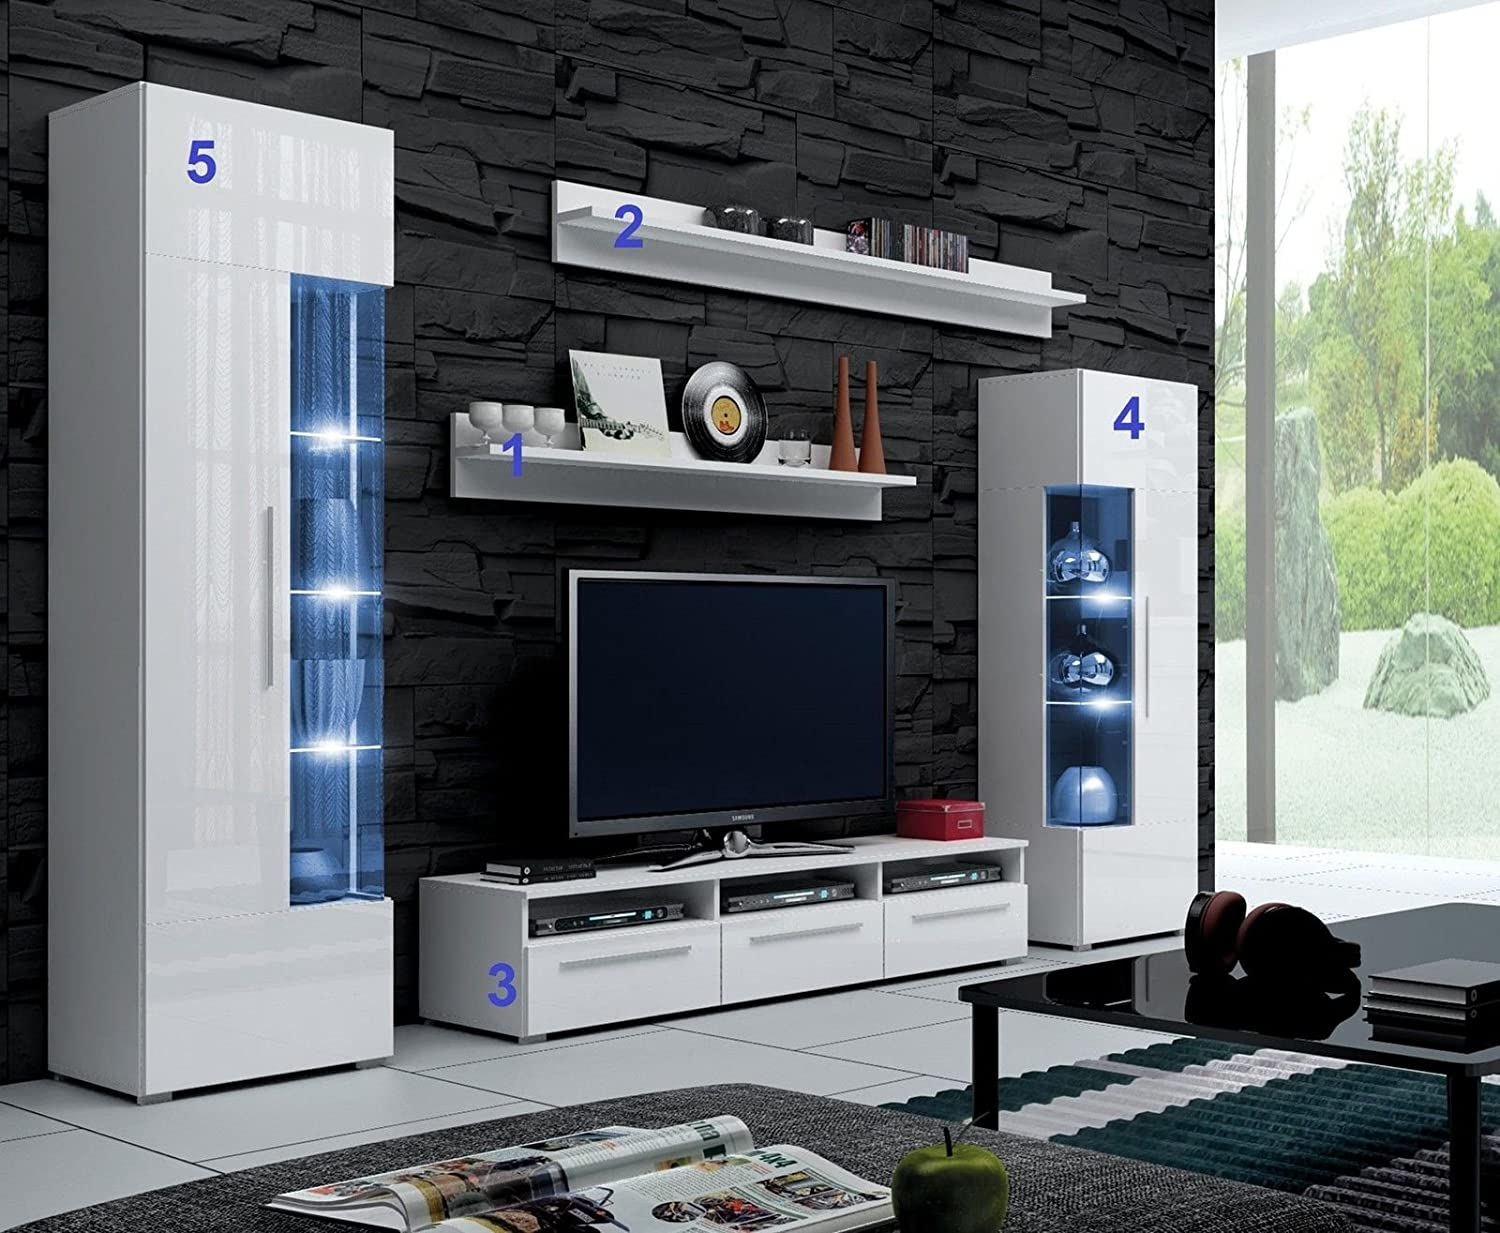 Tall Living Room Cabinets Voguish Furniture Combo For Living Room Freestanding Tall